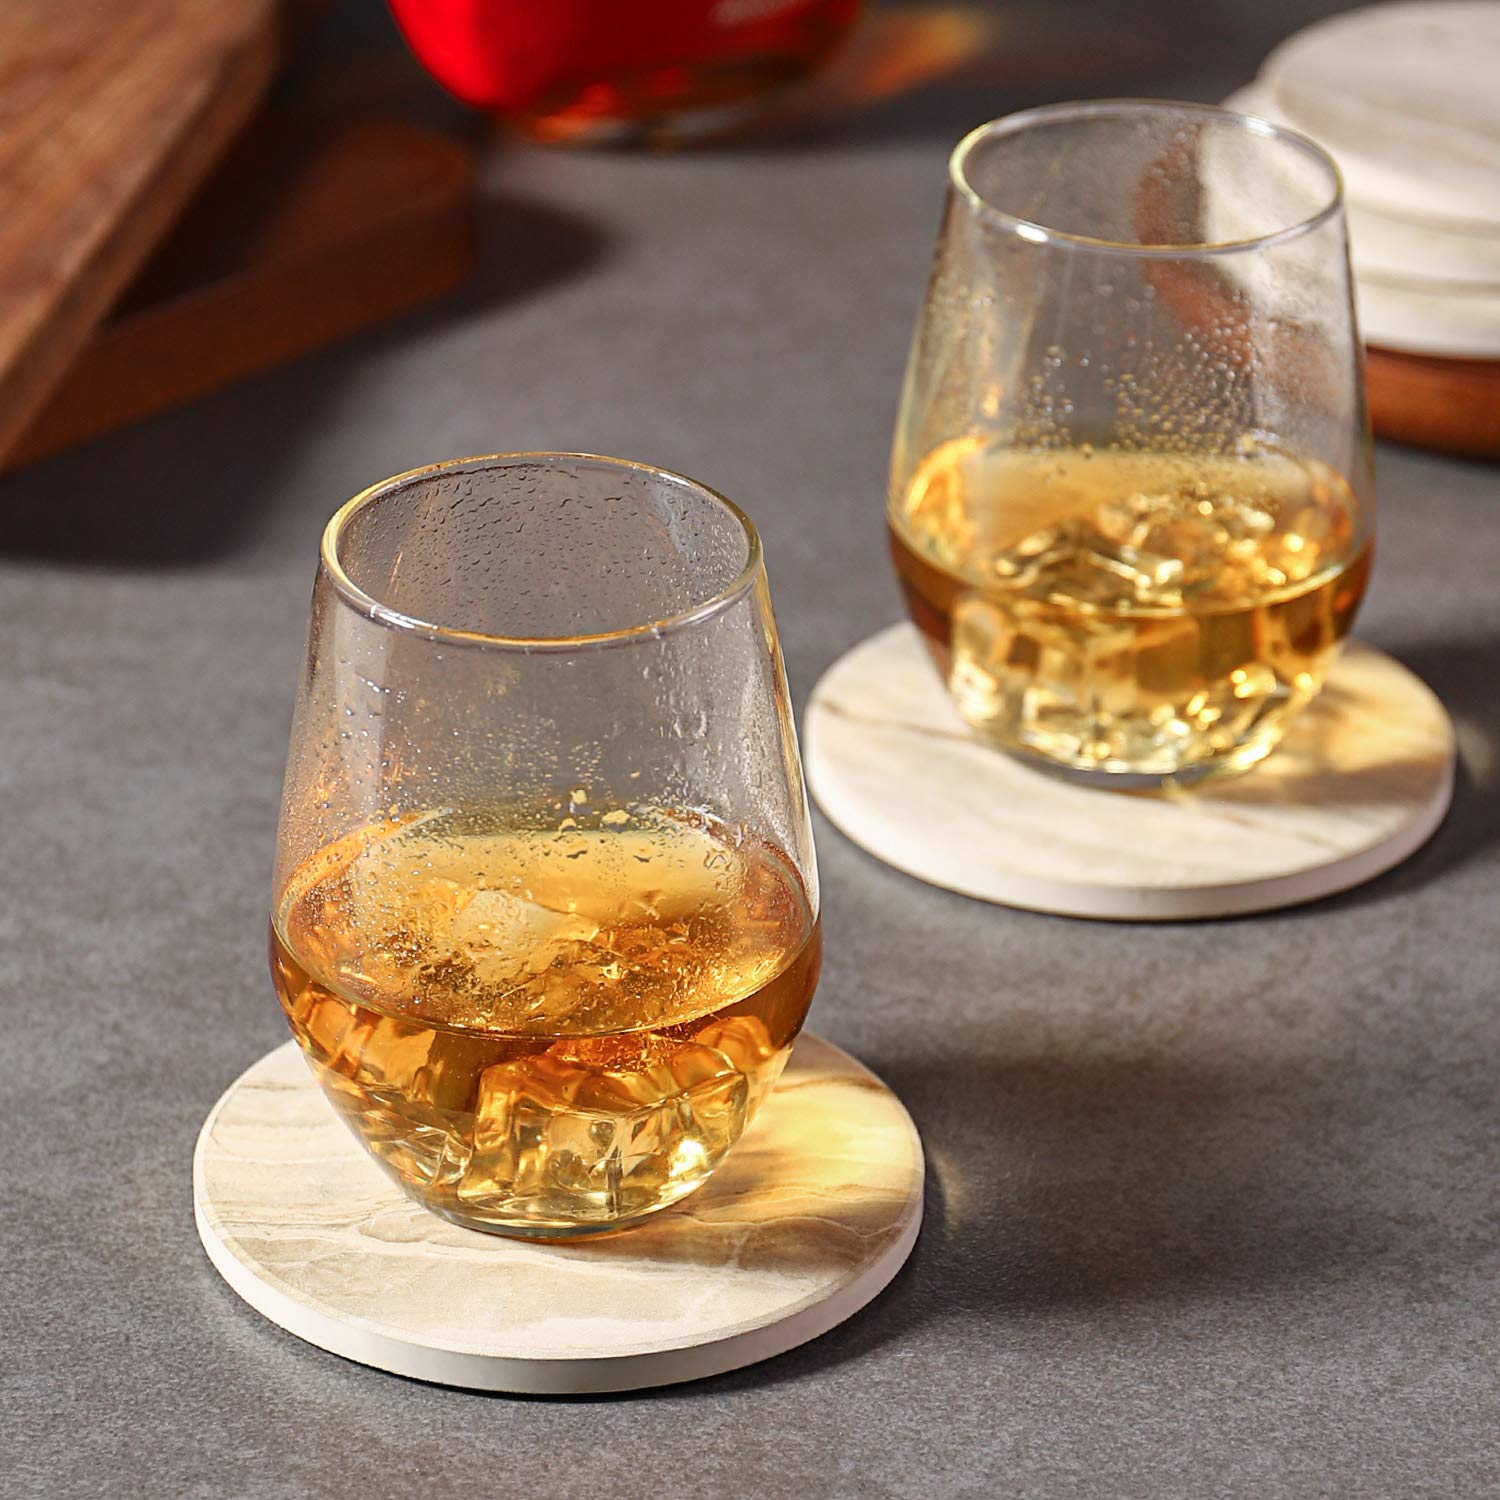 Suitable for Kinds of Cups 6 Piece Absorbent Drink Coasters Sets Absorbent Coasters with Cork 4 Inches LIFVER Coasters for Drinks for Housewarming Gifts for Home Decor Cherry Style